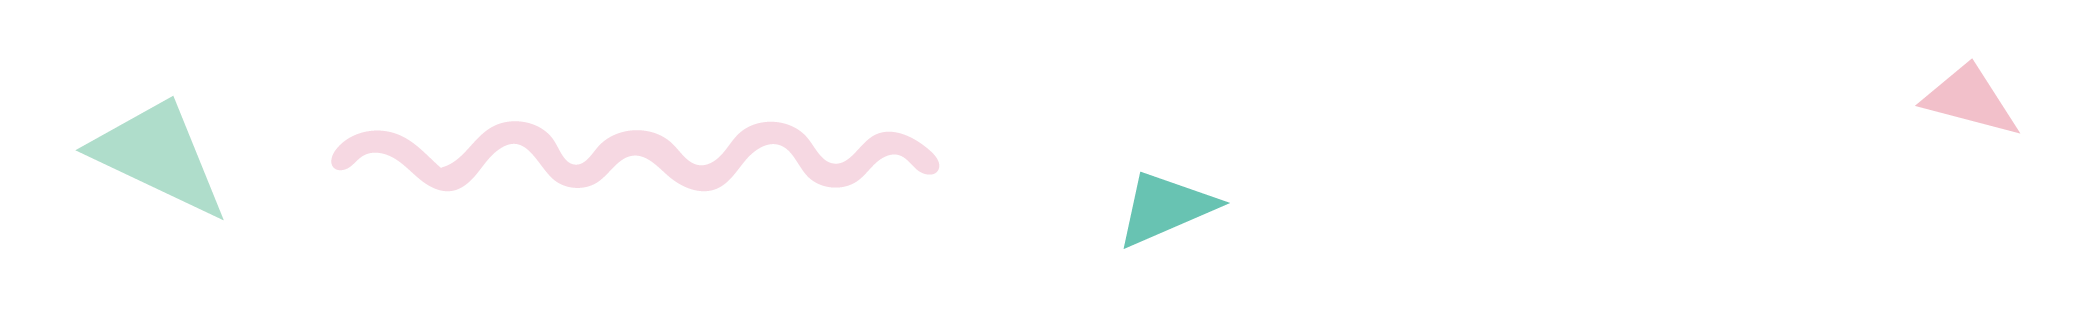 dividers-01.png